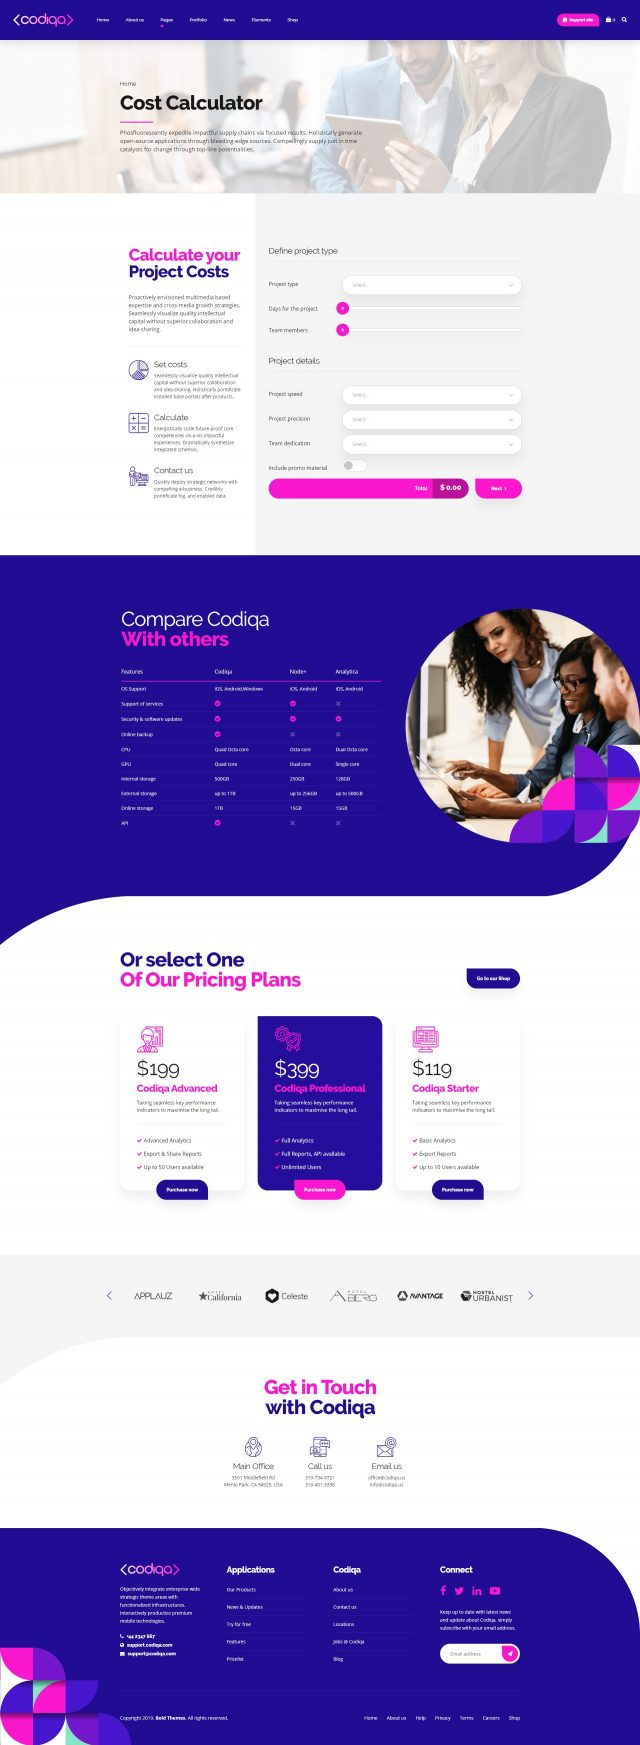 http://cost-calculator.bold-themes.com/new-main-demo/wp-content/uploads/sites/2/2019/11/codiqa-640x1745.jpg